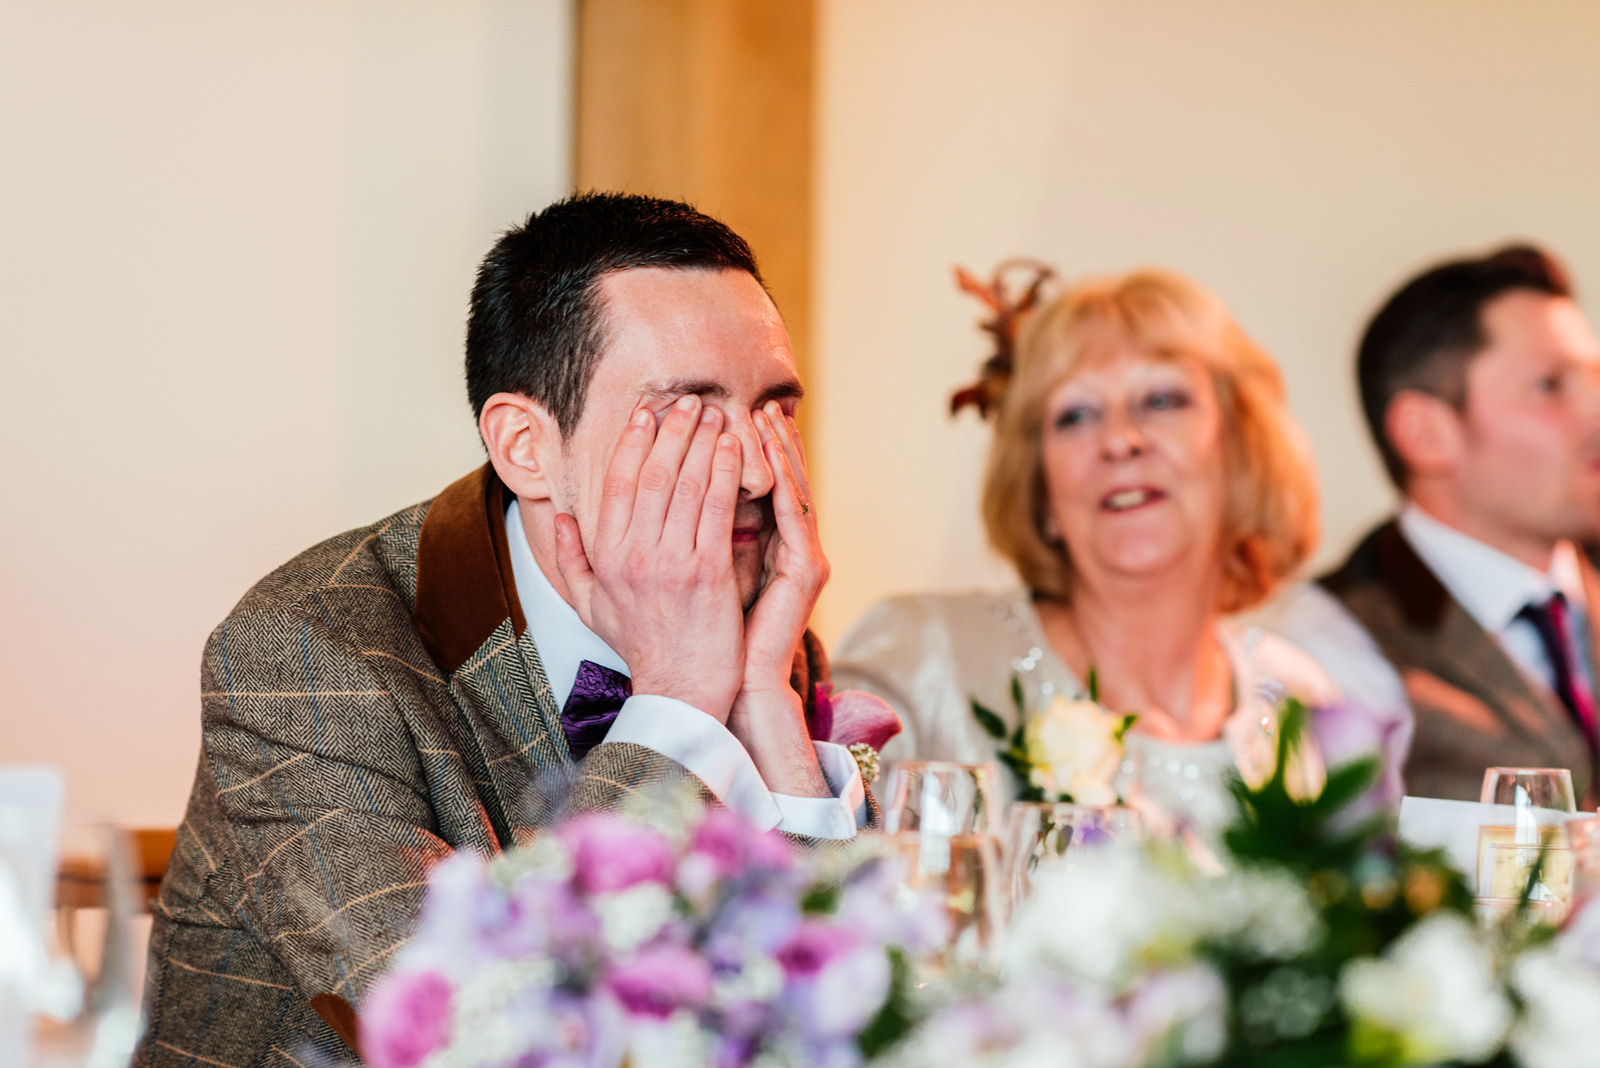 groom looking embarrassed during the speeches